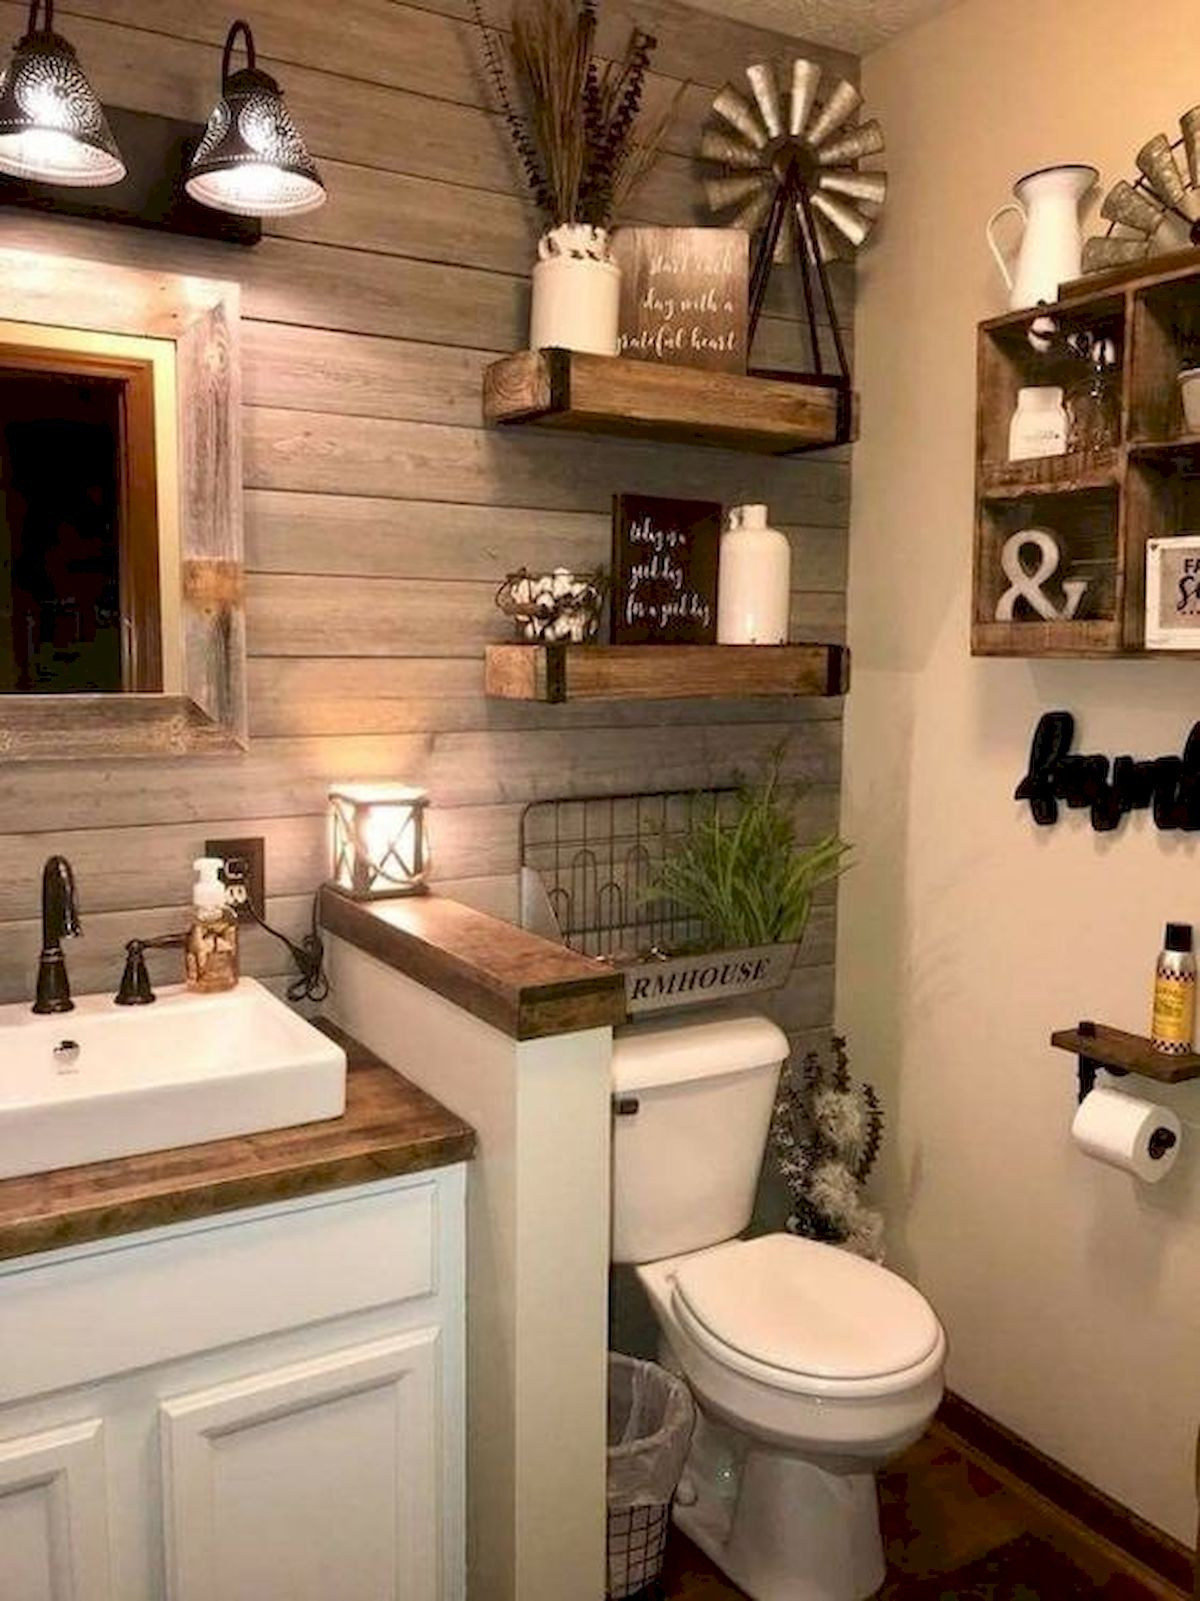 Pictures for Bathroom Wall Decor Lovely 59 Best Farmhouse Wall Decor Ideas for Bathroom Ideaboz